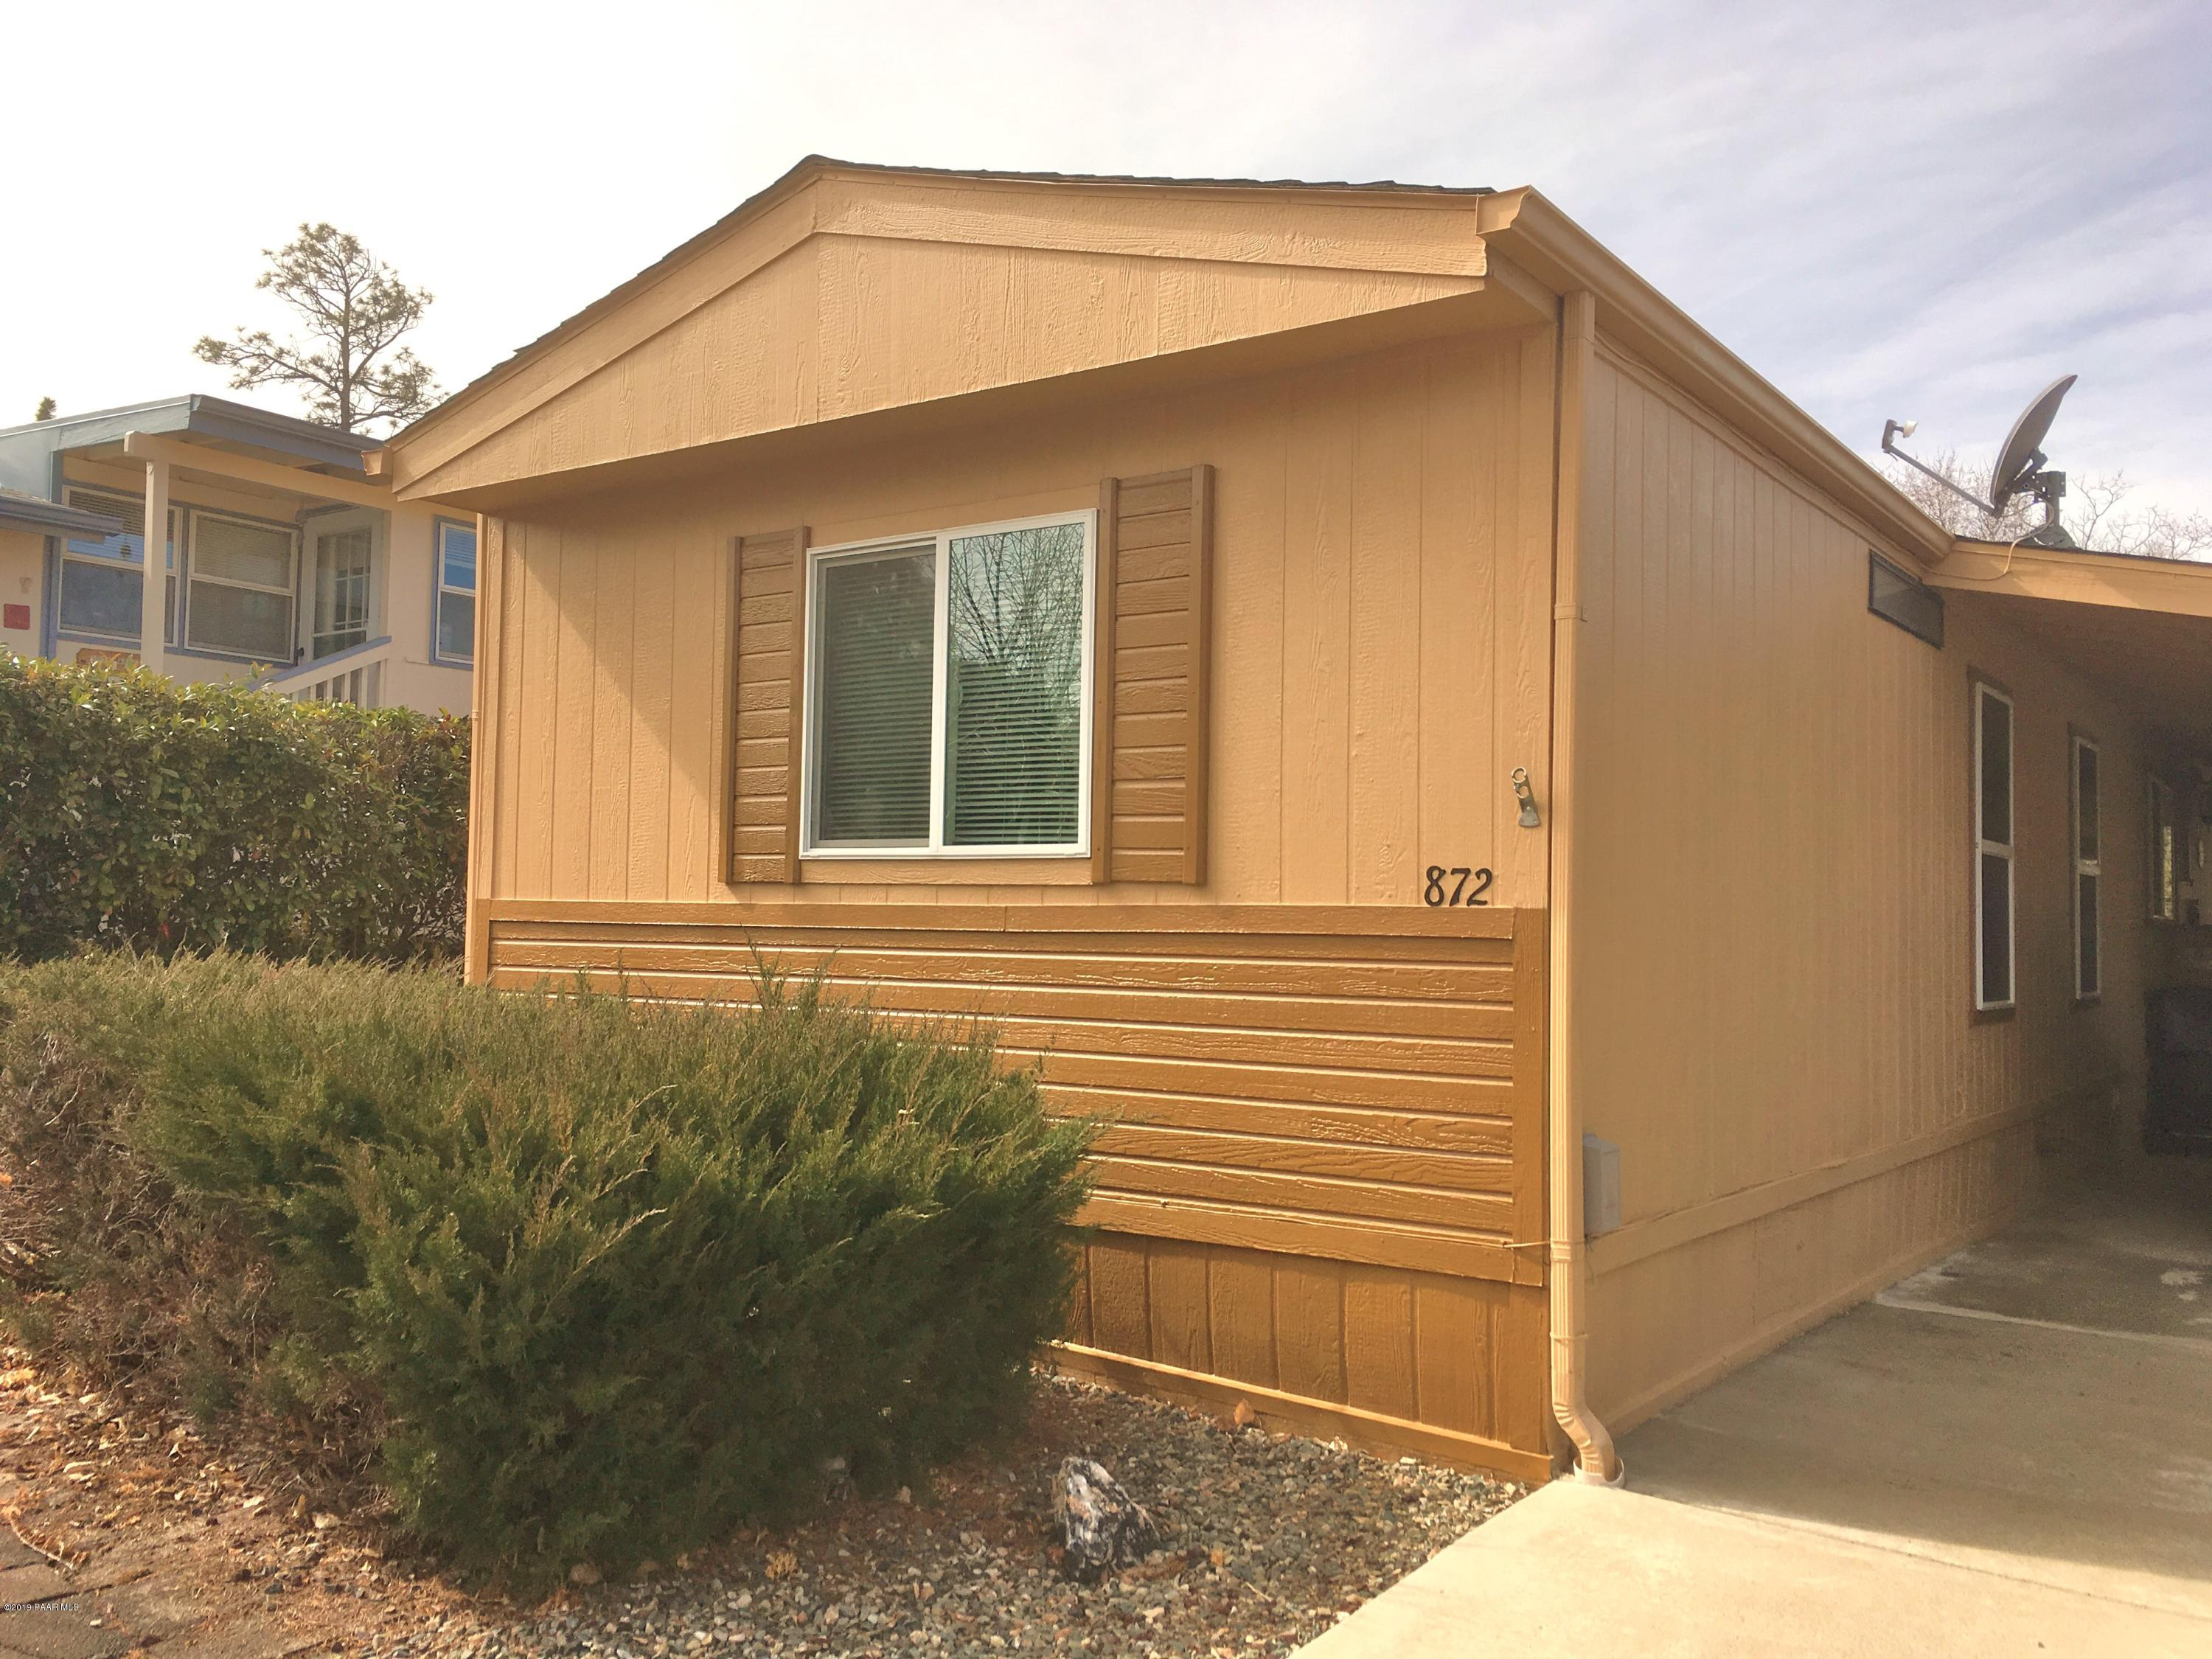 Photo of 872 Glade, Prescott, AZ 86301